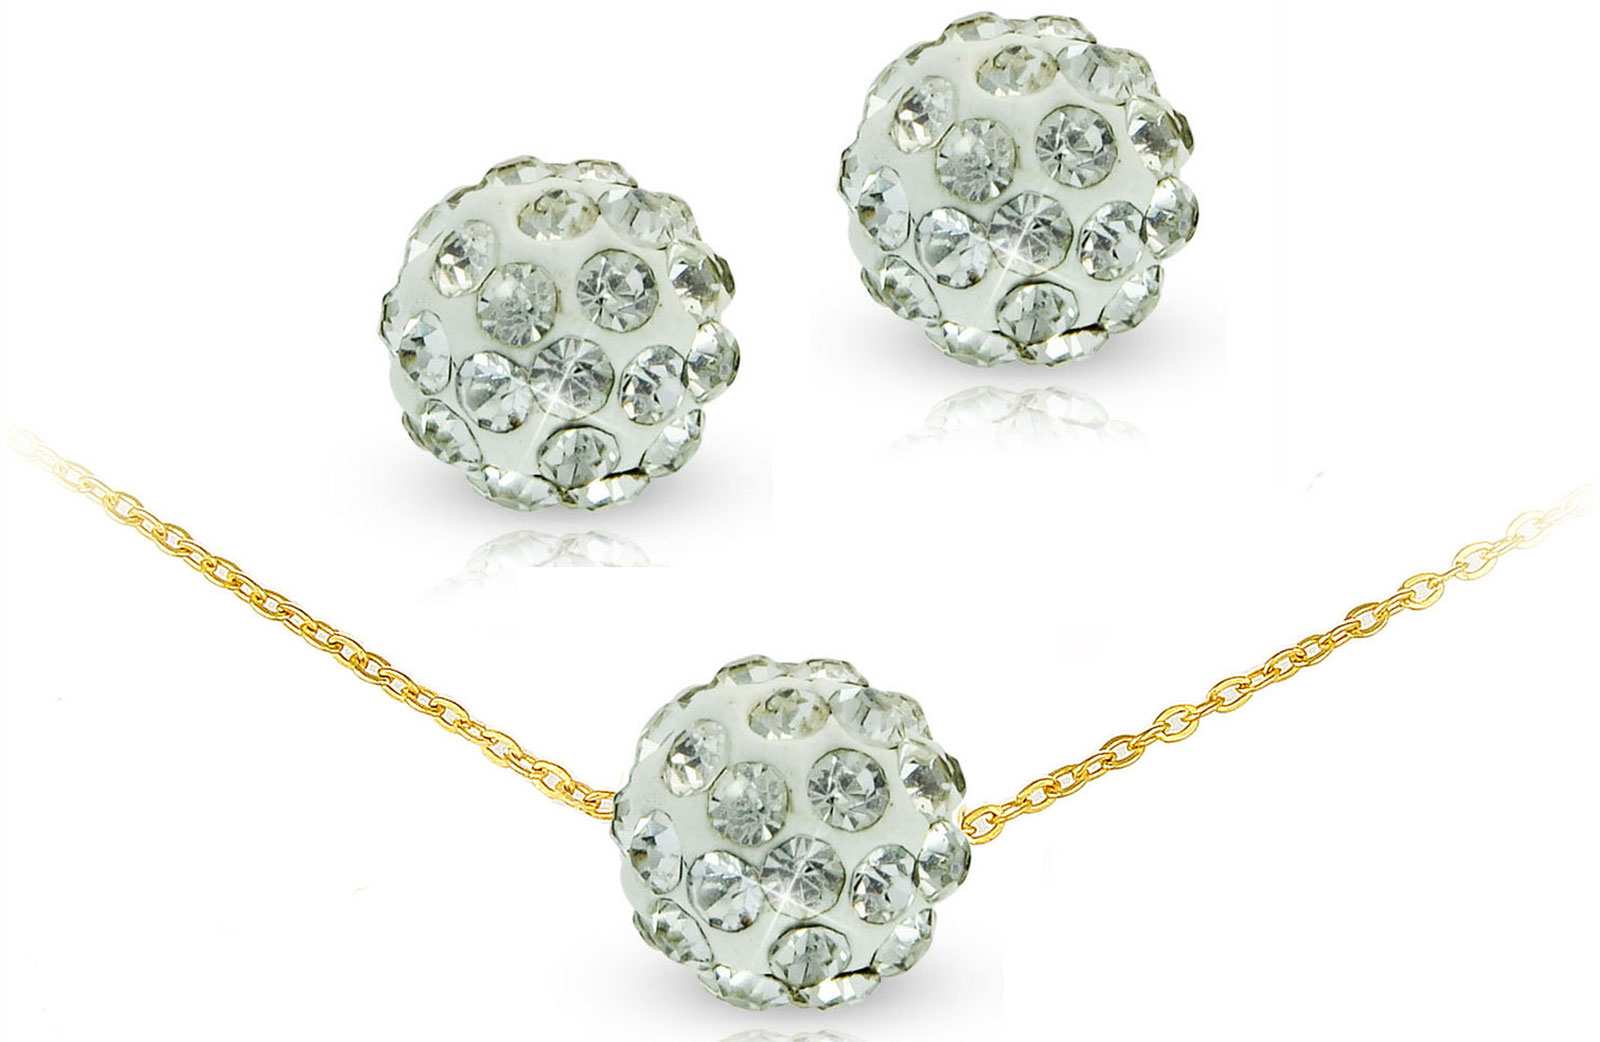 Vera Perla 10k Solid Gold 10mm Simple Crystal Ball Necklace & Earrings